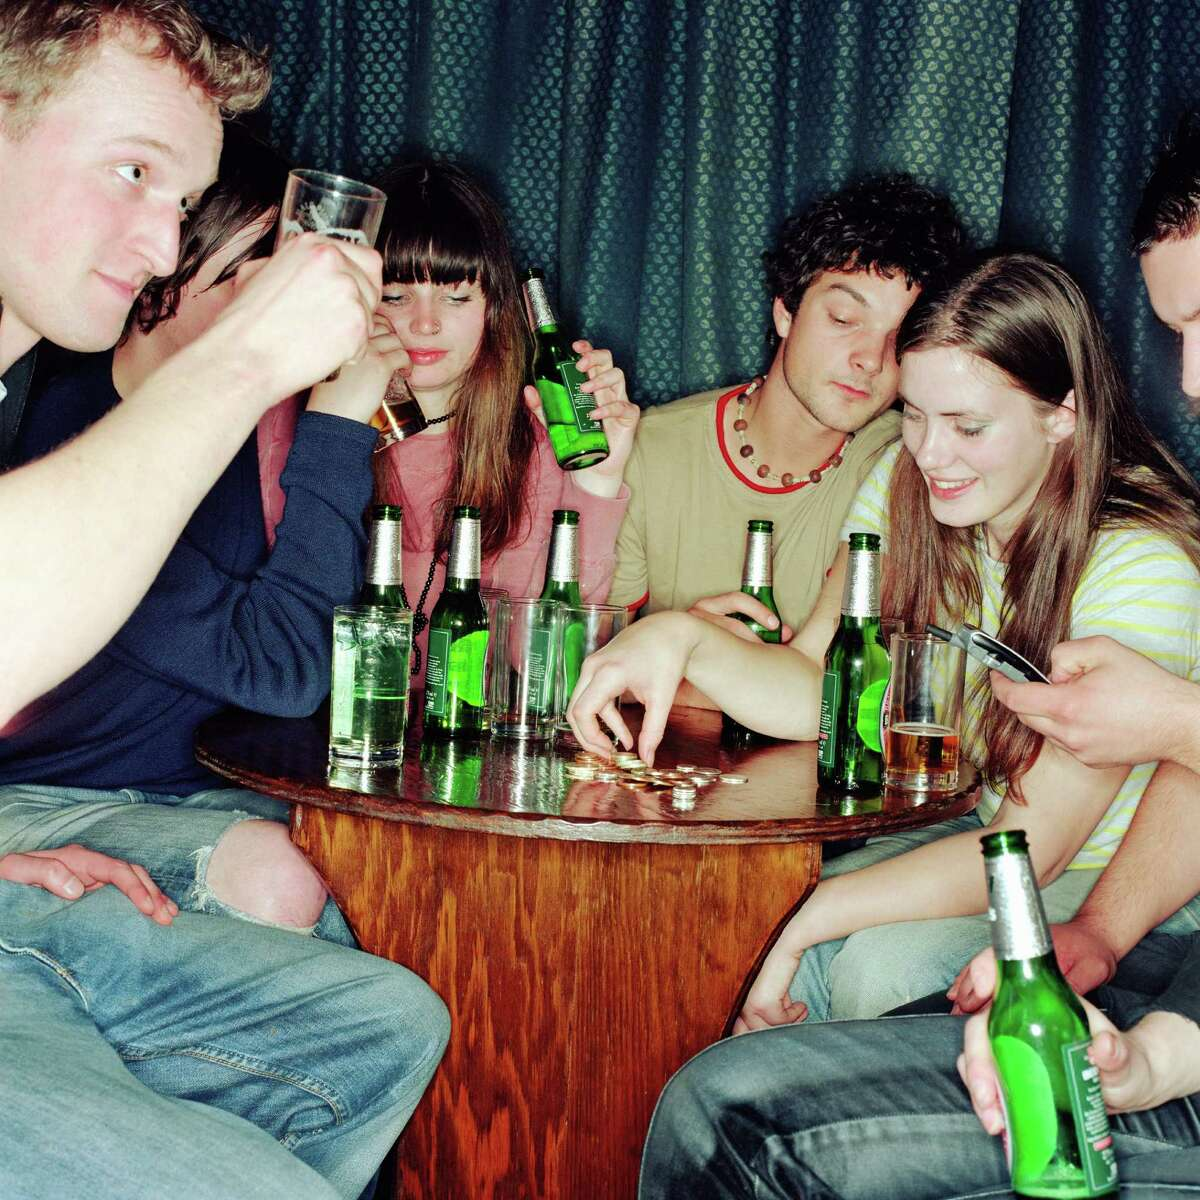 Social activities on the decline Nearly 39 percent of students polled said they spent five hours or less each week socializing, compared to the 18 percent who got out and had fun in 1987. Source:UCLA's Higher Education Research Institute/Associated Press